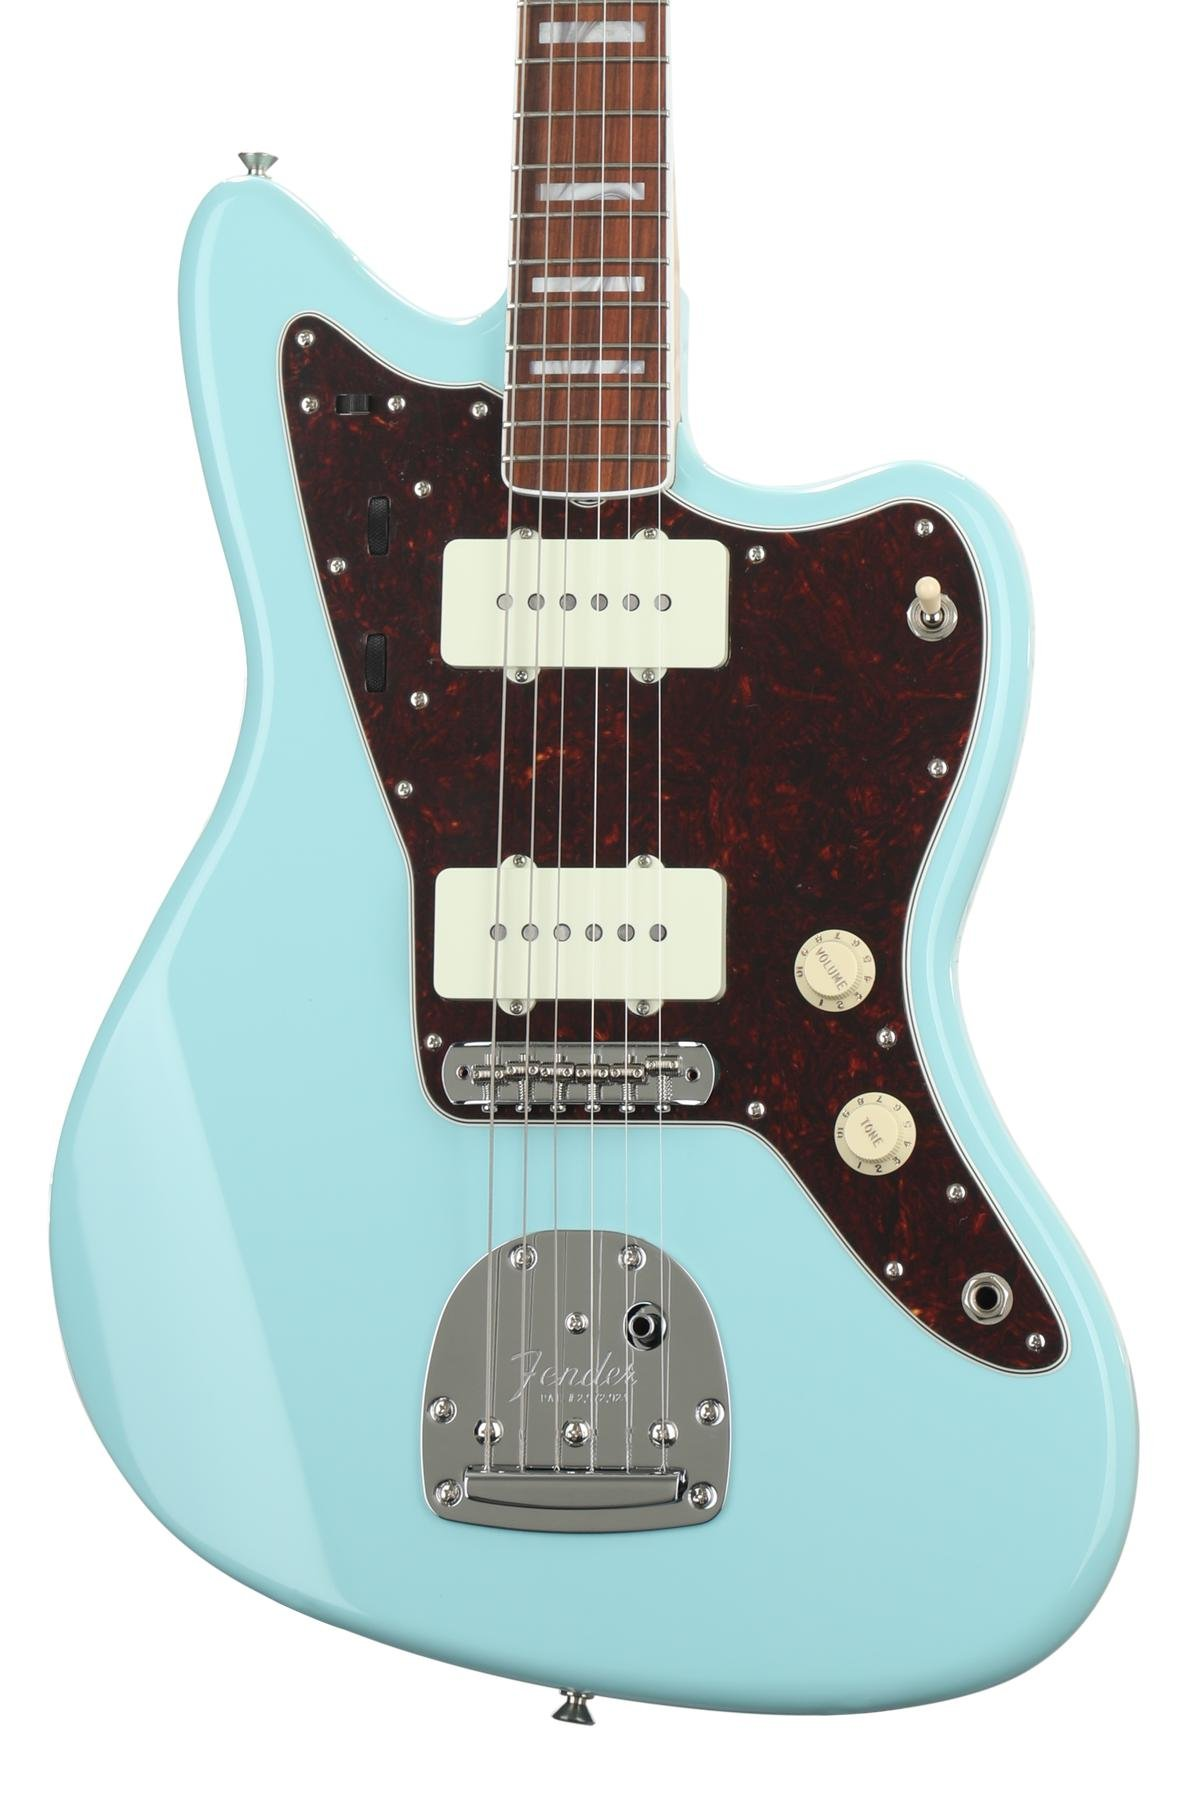 Jazzmaster 3 Way Switch Fender Limited Edition 60th Anniversary Classic Daphne Blue Image 1